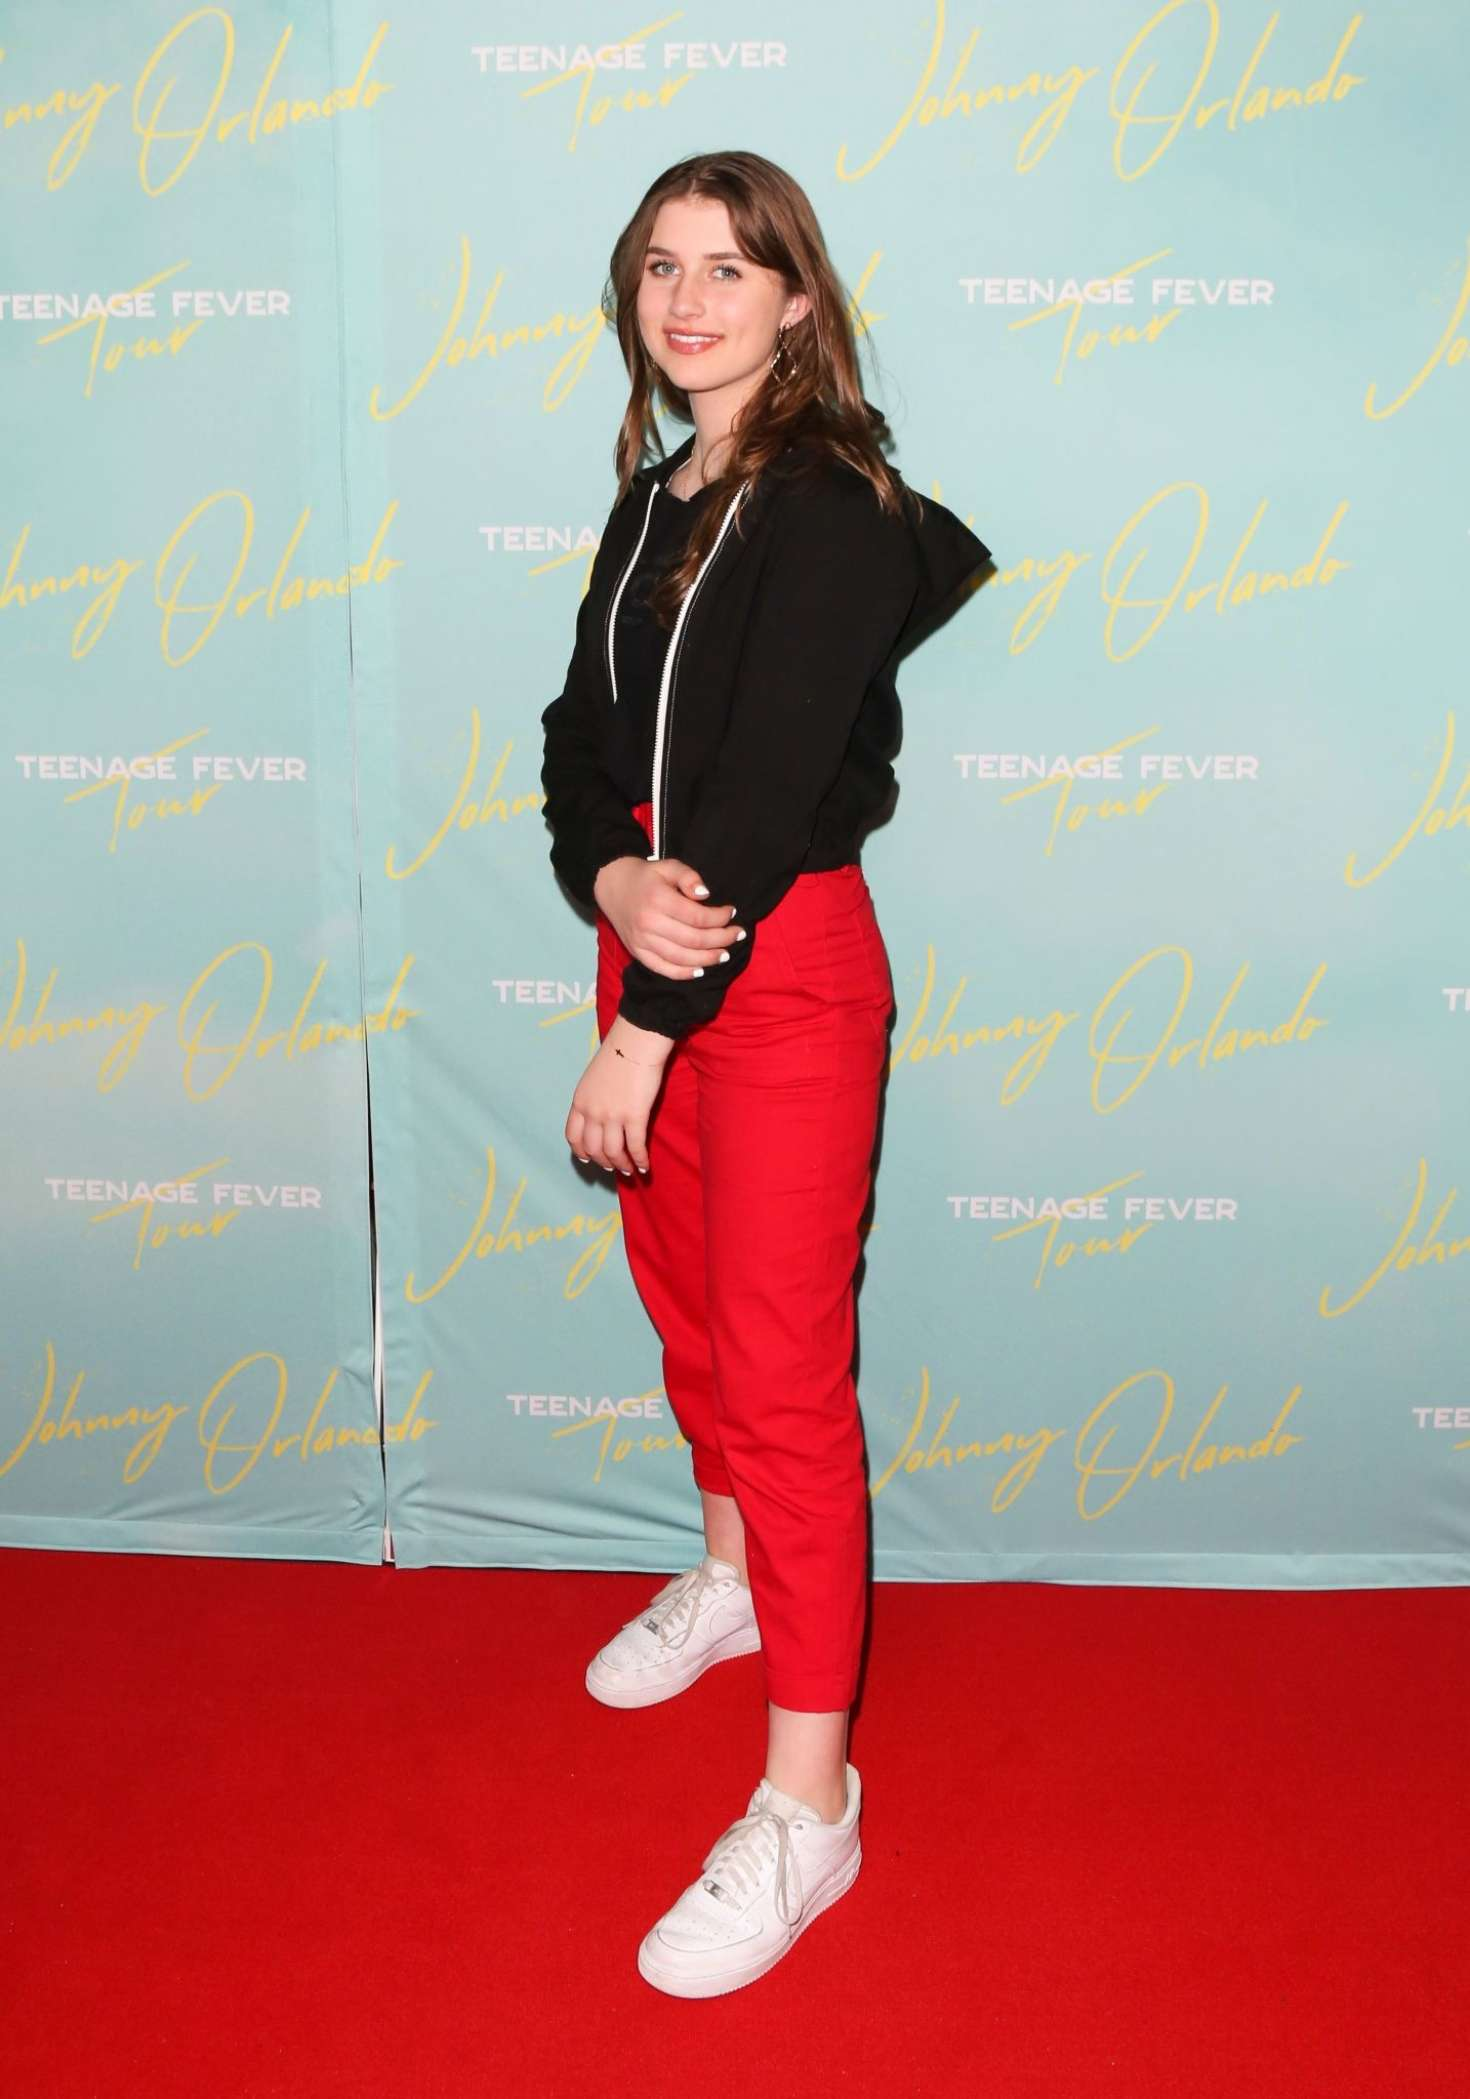 Brooke Butler 2019 : Brooke Butler: Johnny Orlando EP release and tour kick off party -01